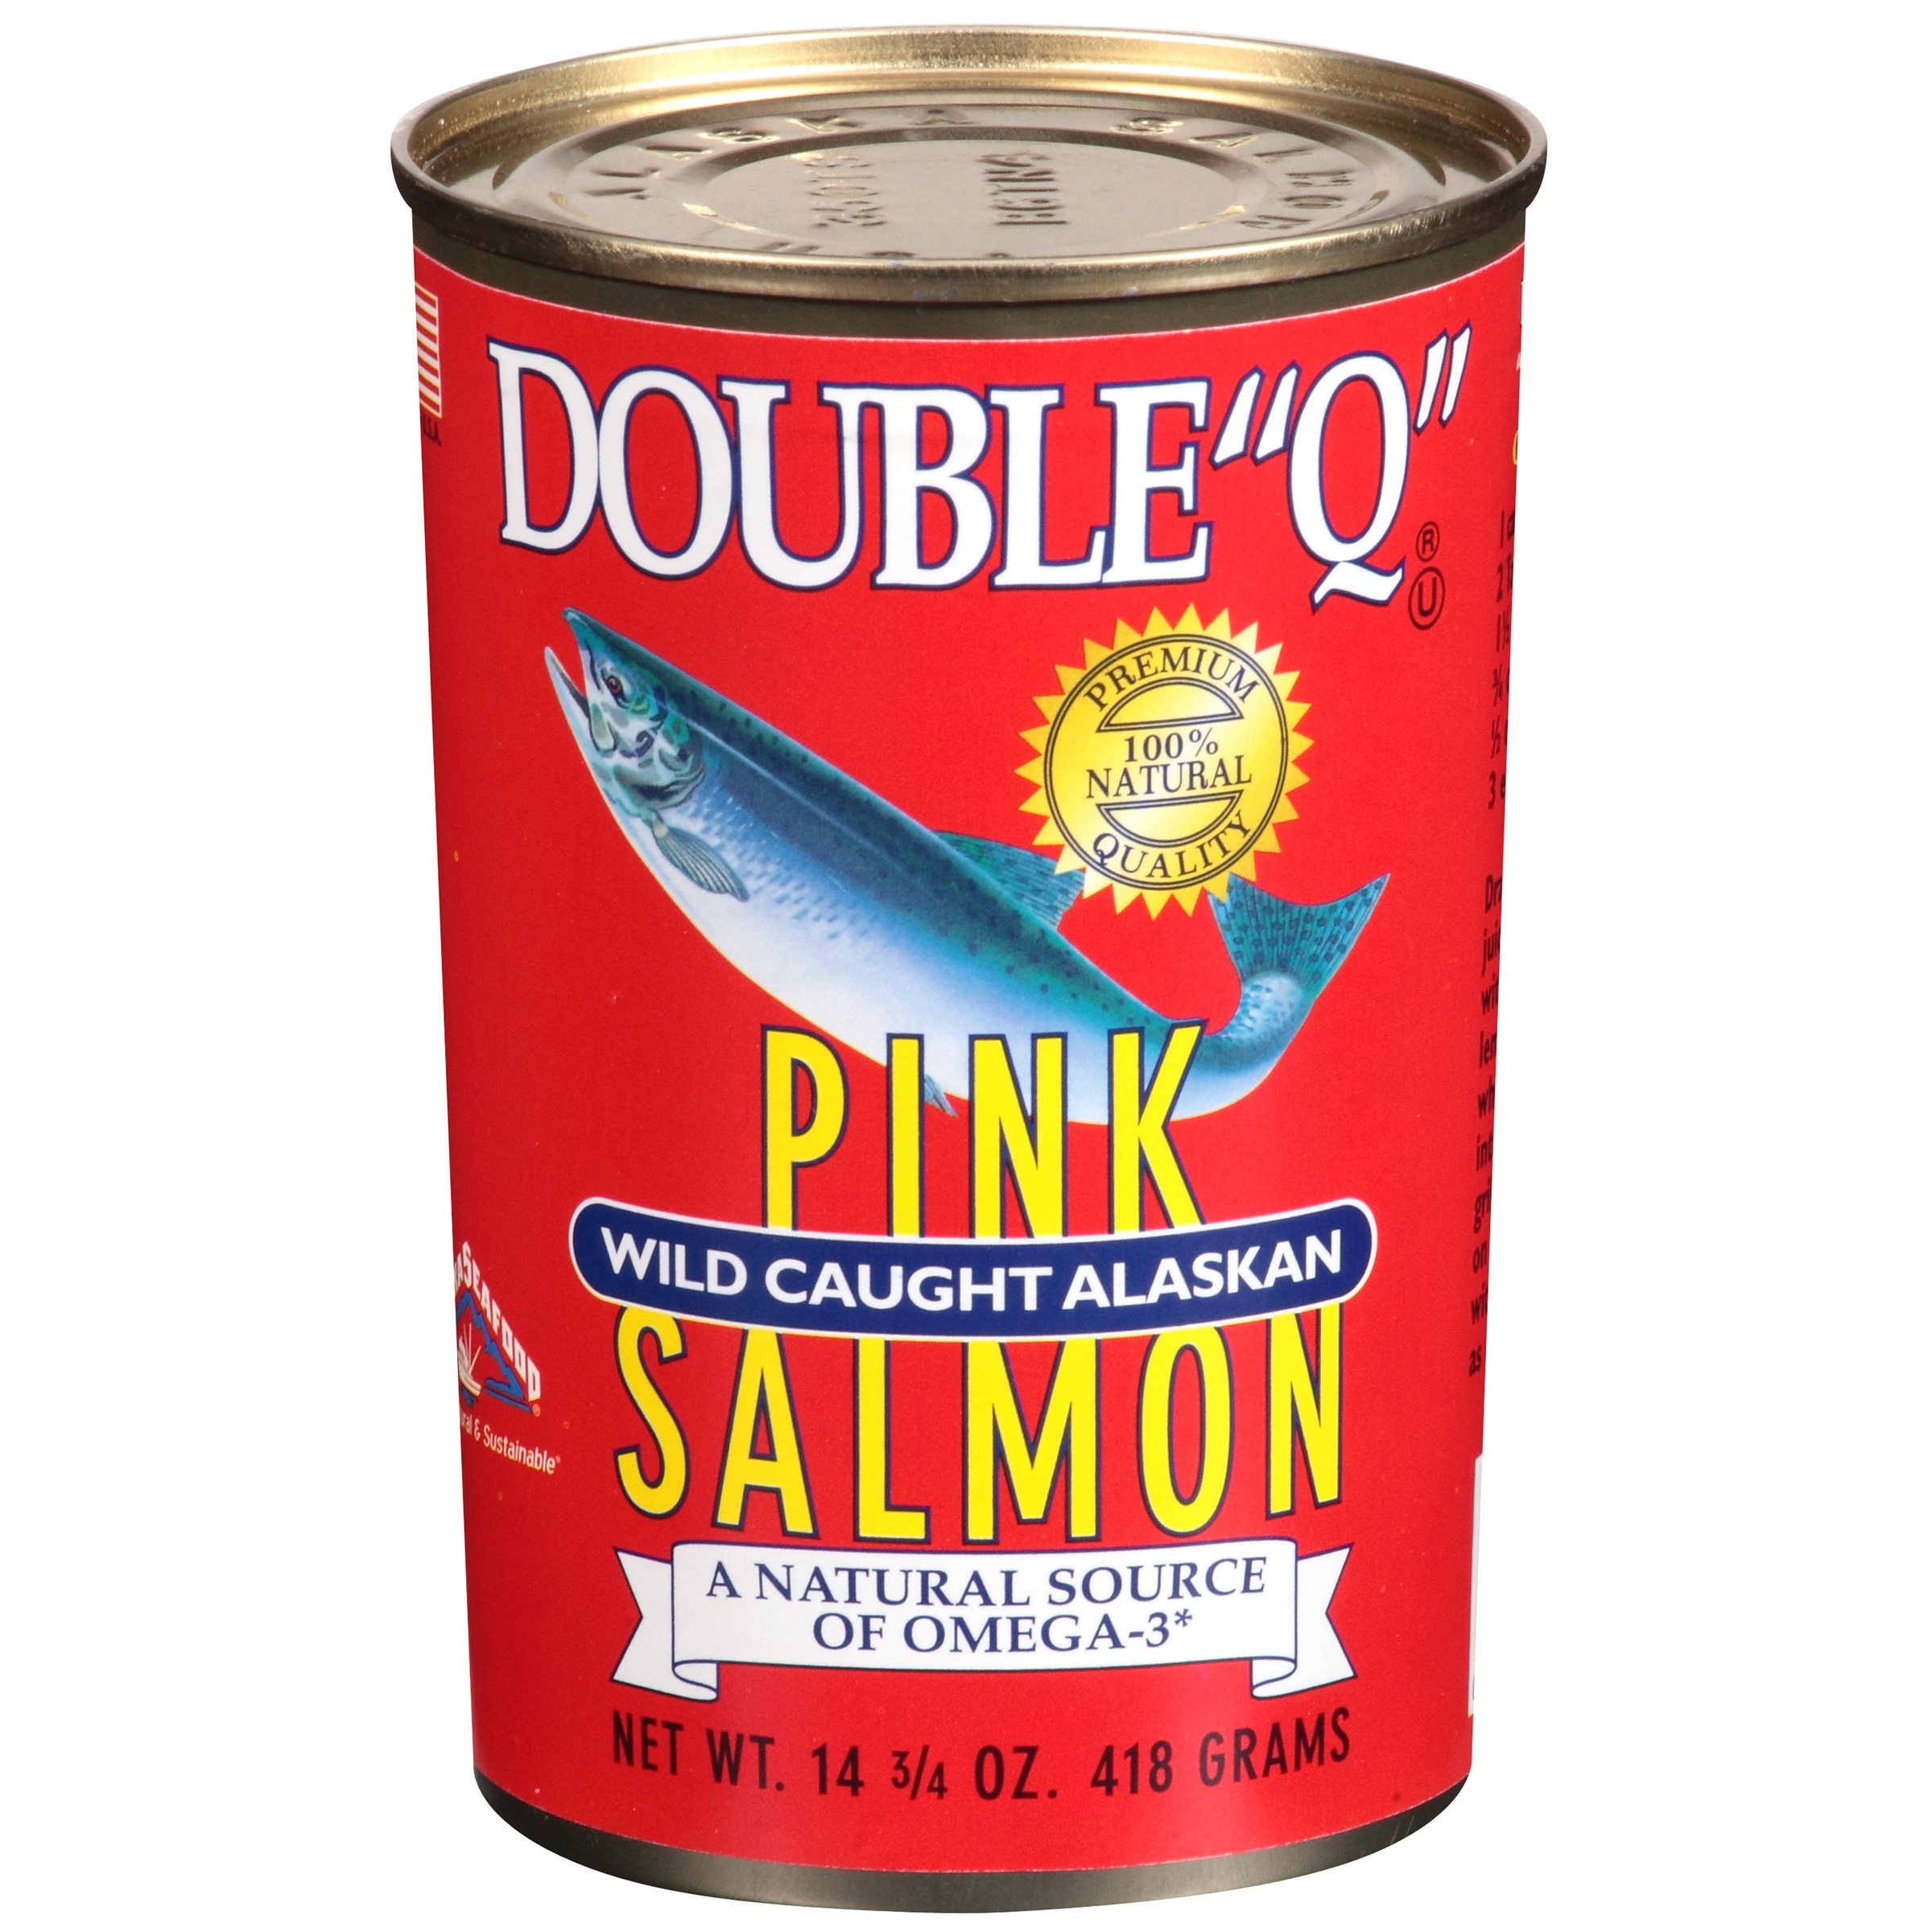 "Double ""Q"" Pink Wild Caught Alaskan Salmon 14 3 4 oz Can by ConAgra Foods Inc."